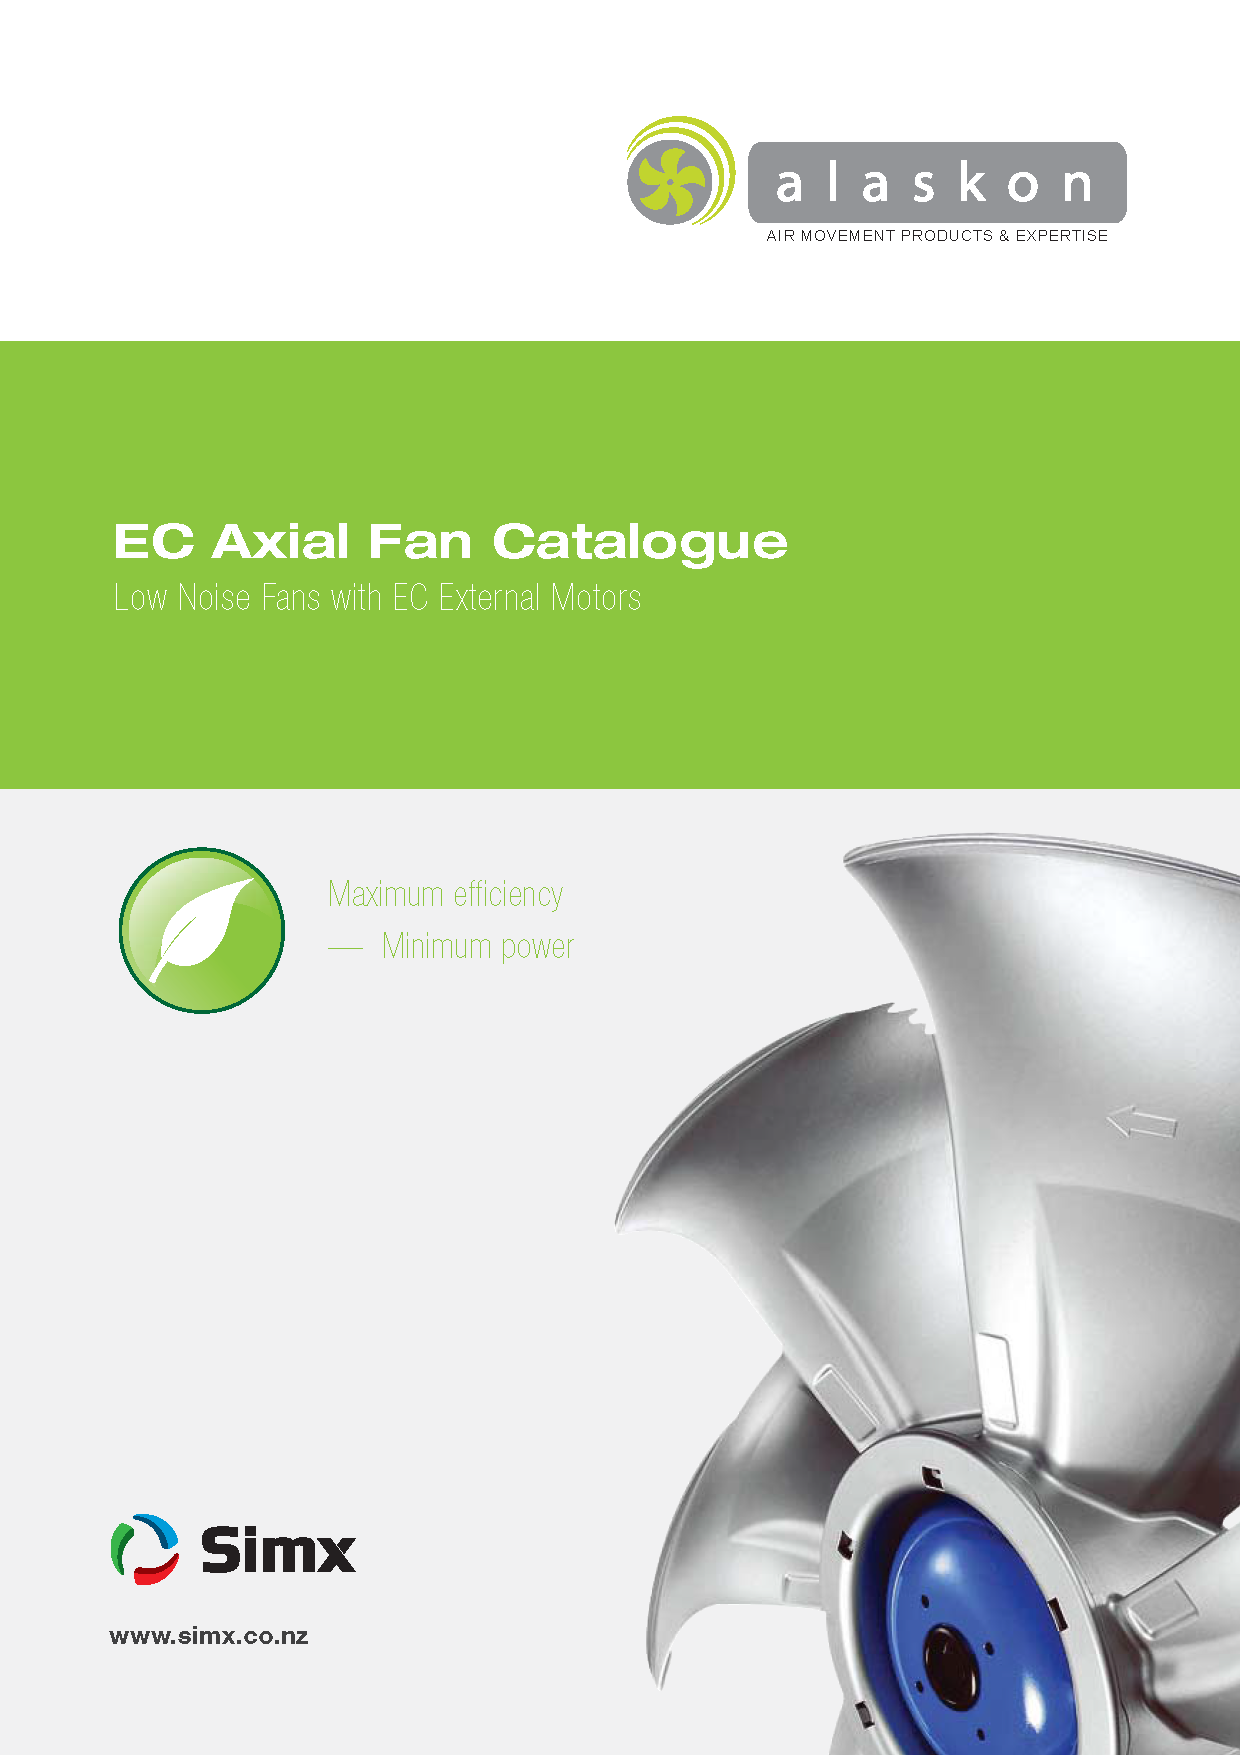 EC Axial Fan Catalogue